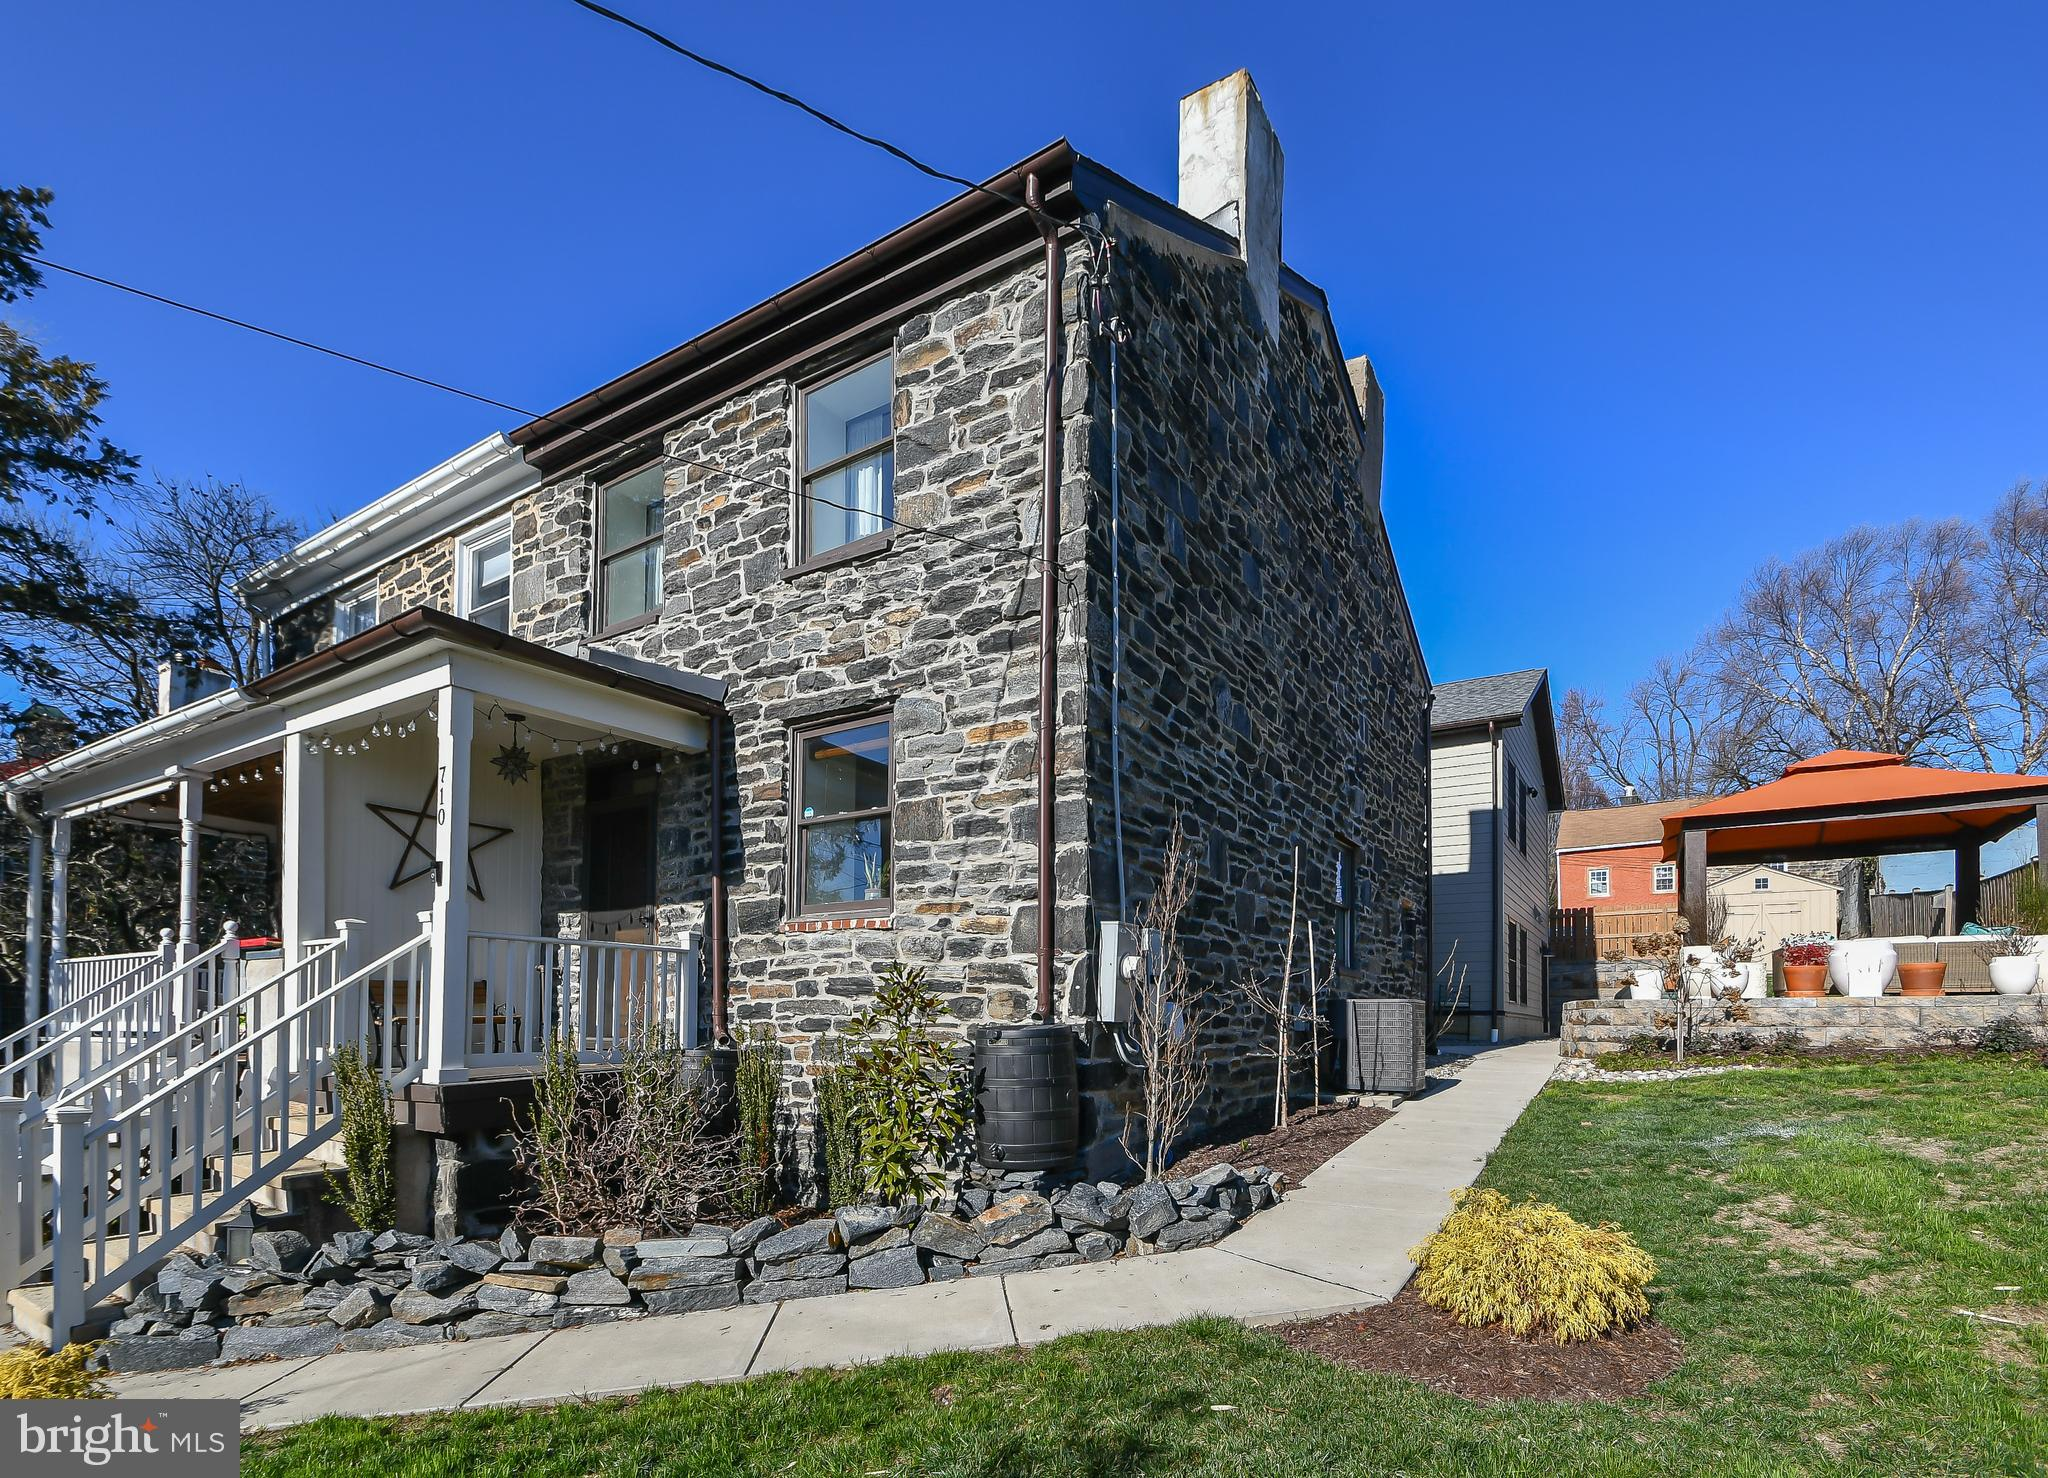 710 PACIFIC STREET, BALTIMORE, MD 21211